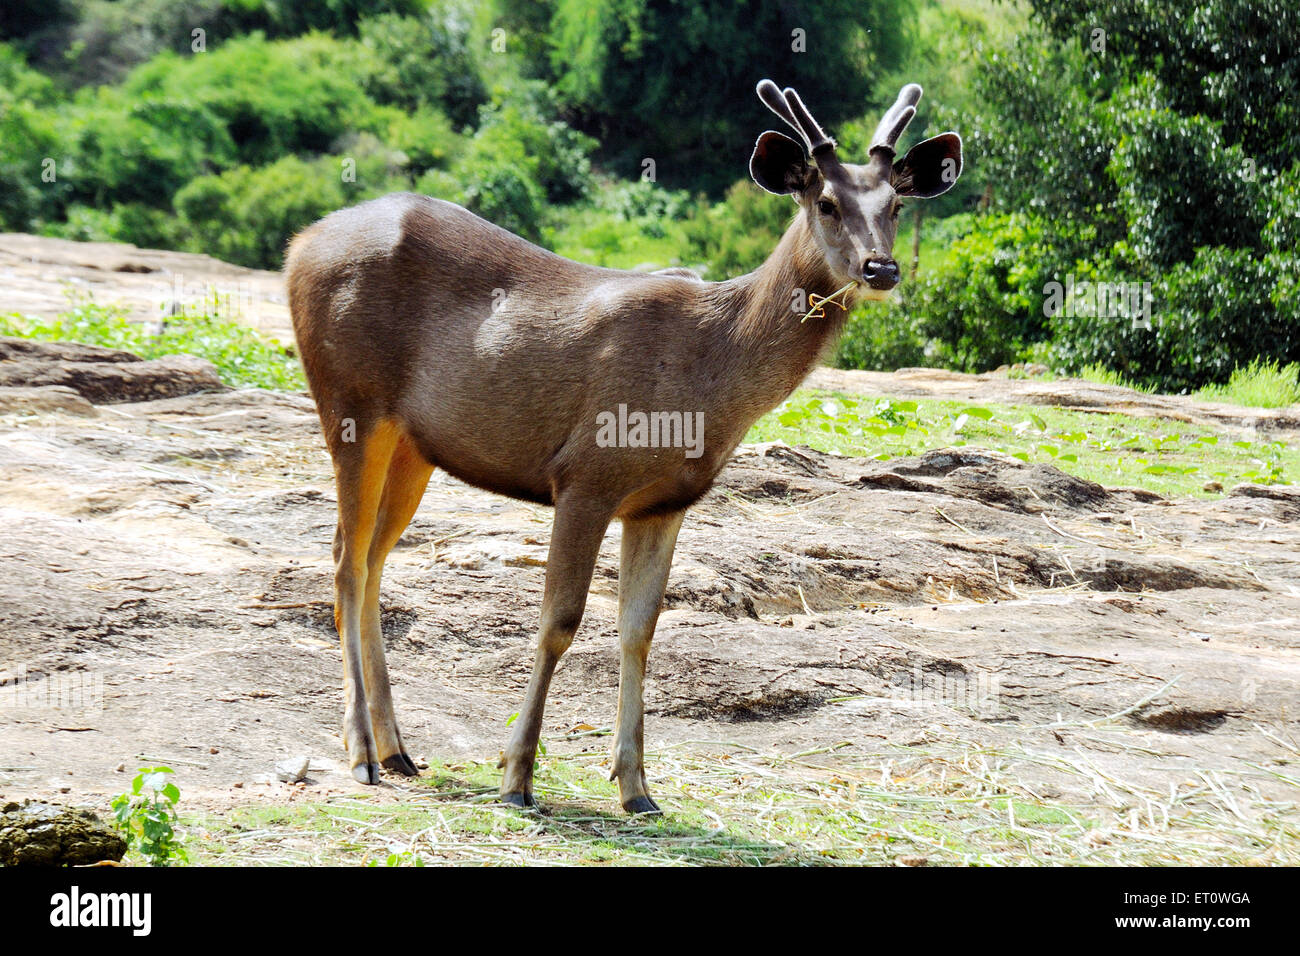 Deer cervus duvauceli ; India - Stock Image